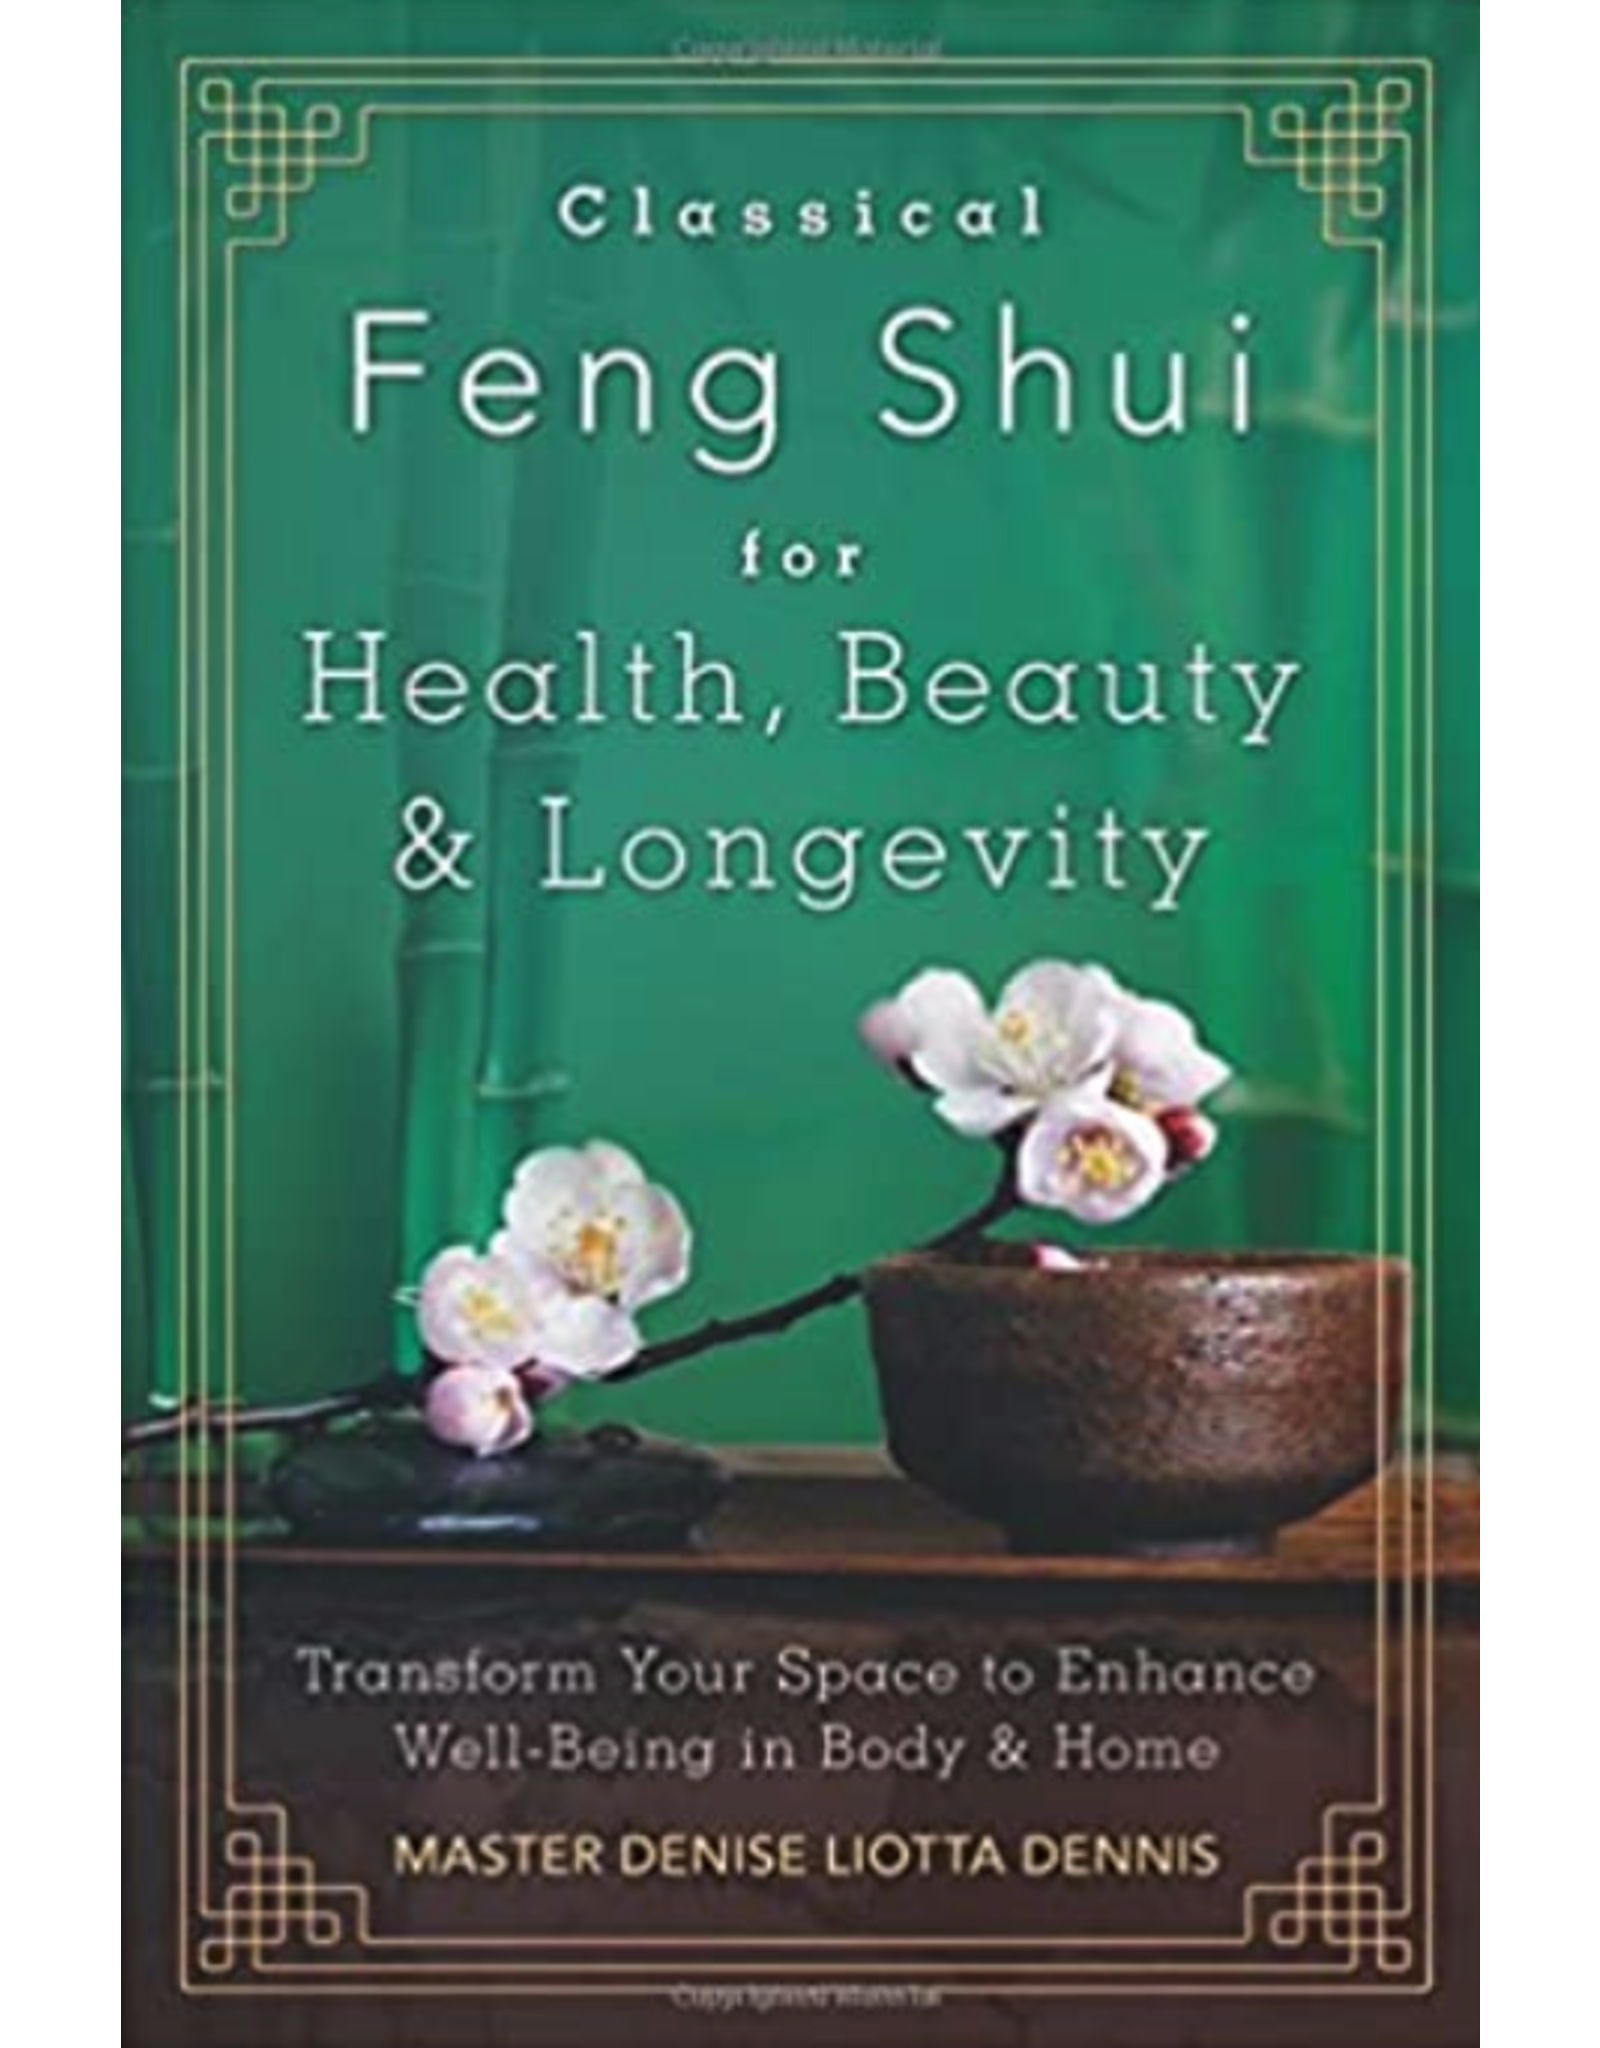 Classical Feng Shui for Health